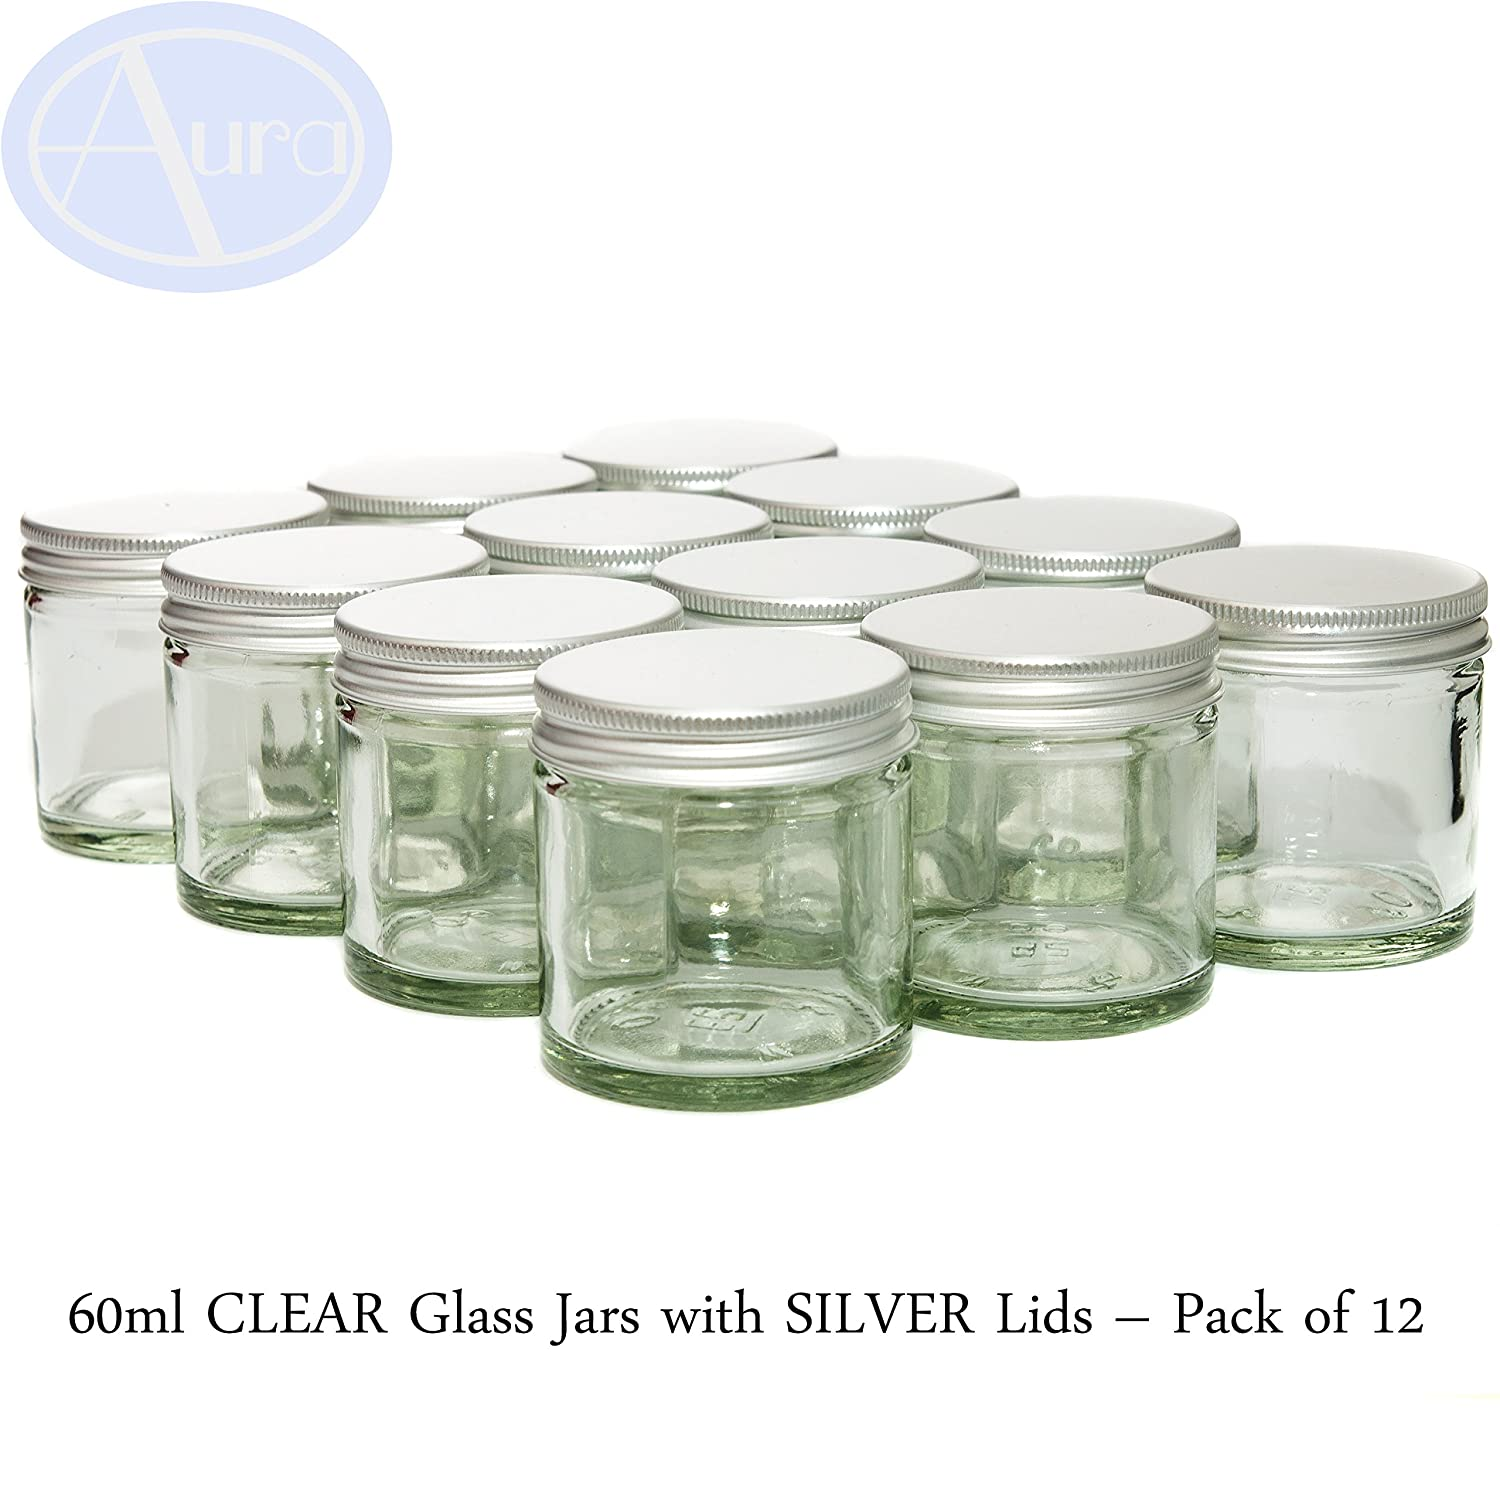 60ml Clear Glass Jars with Silver Lids - Pack of 12 Aura Essential Oils CGJ60mlS12